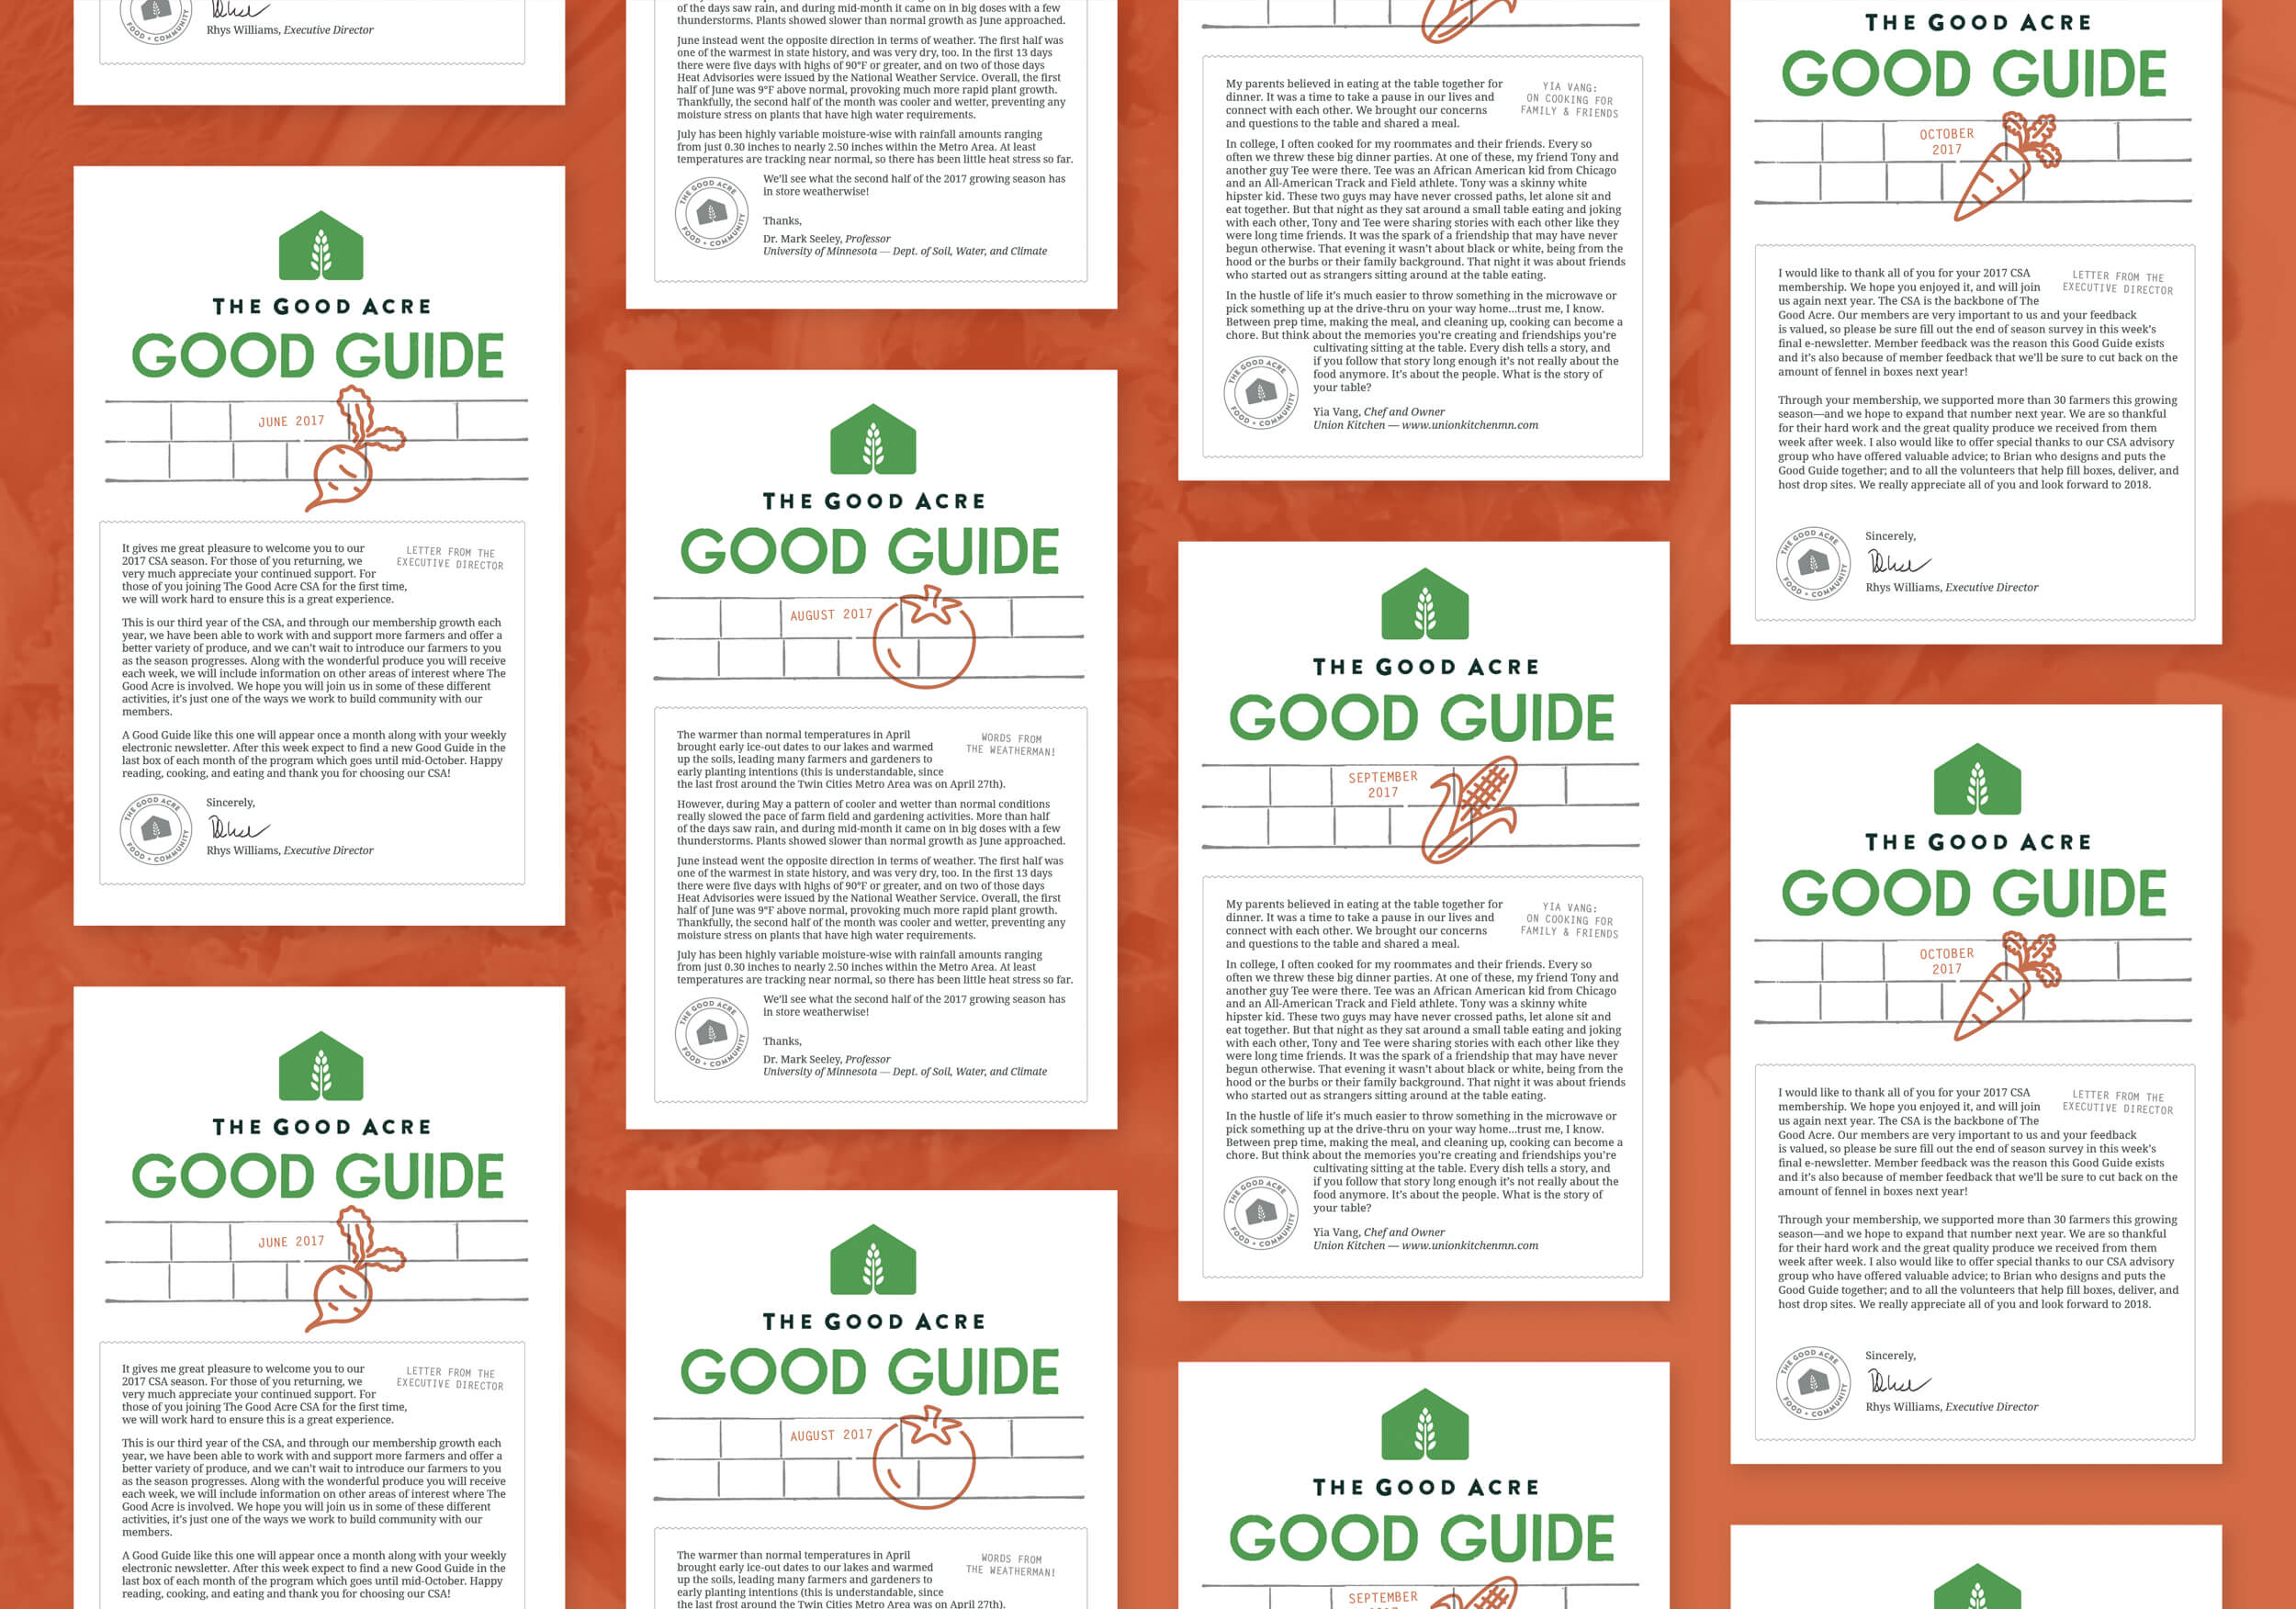 A collection of Good Guide covers